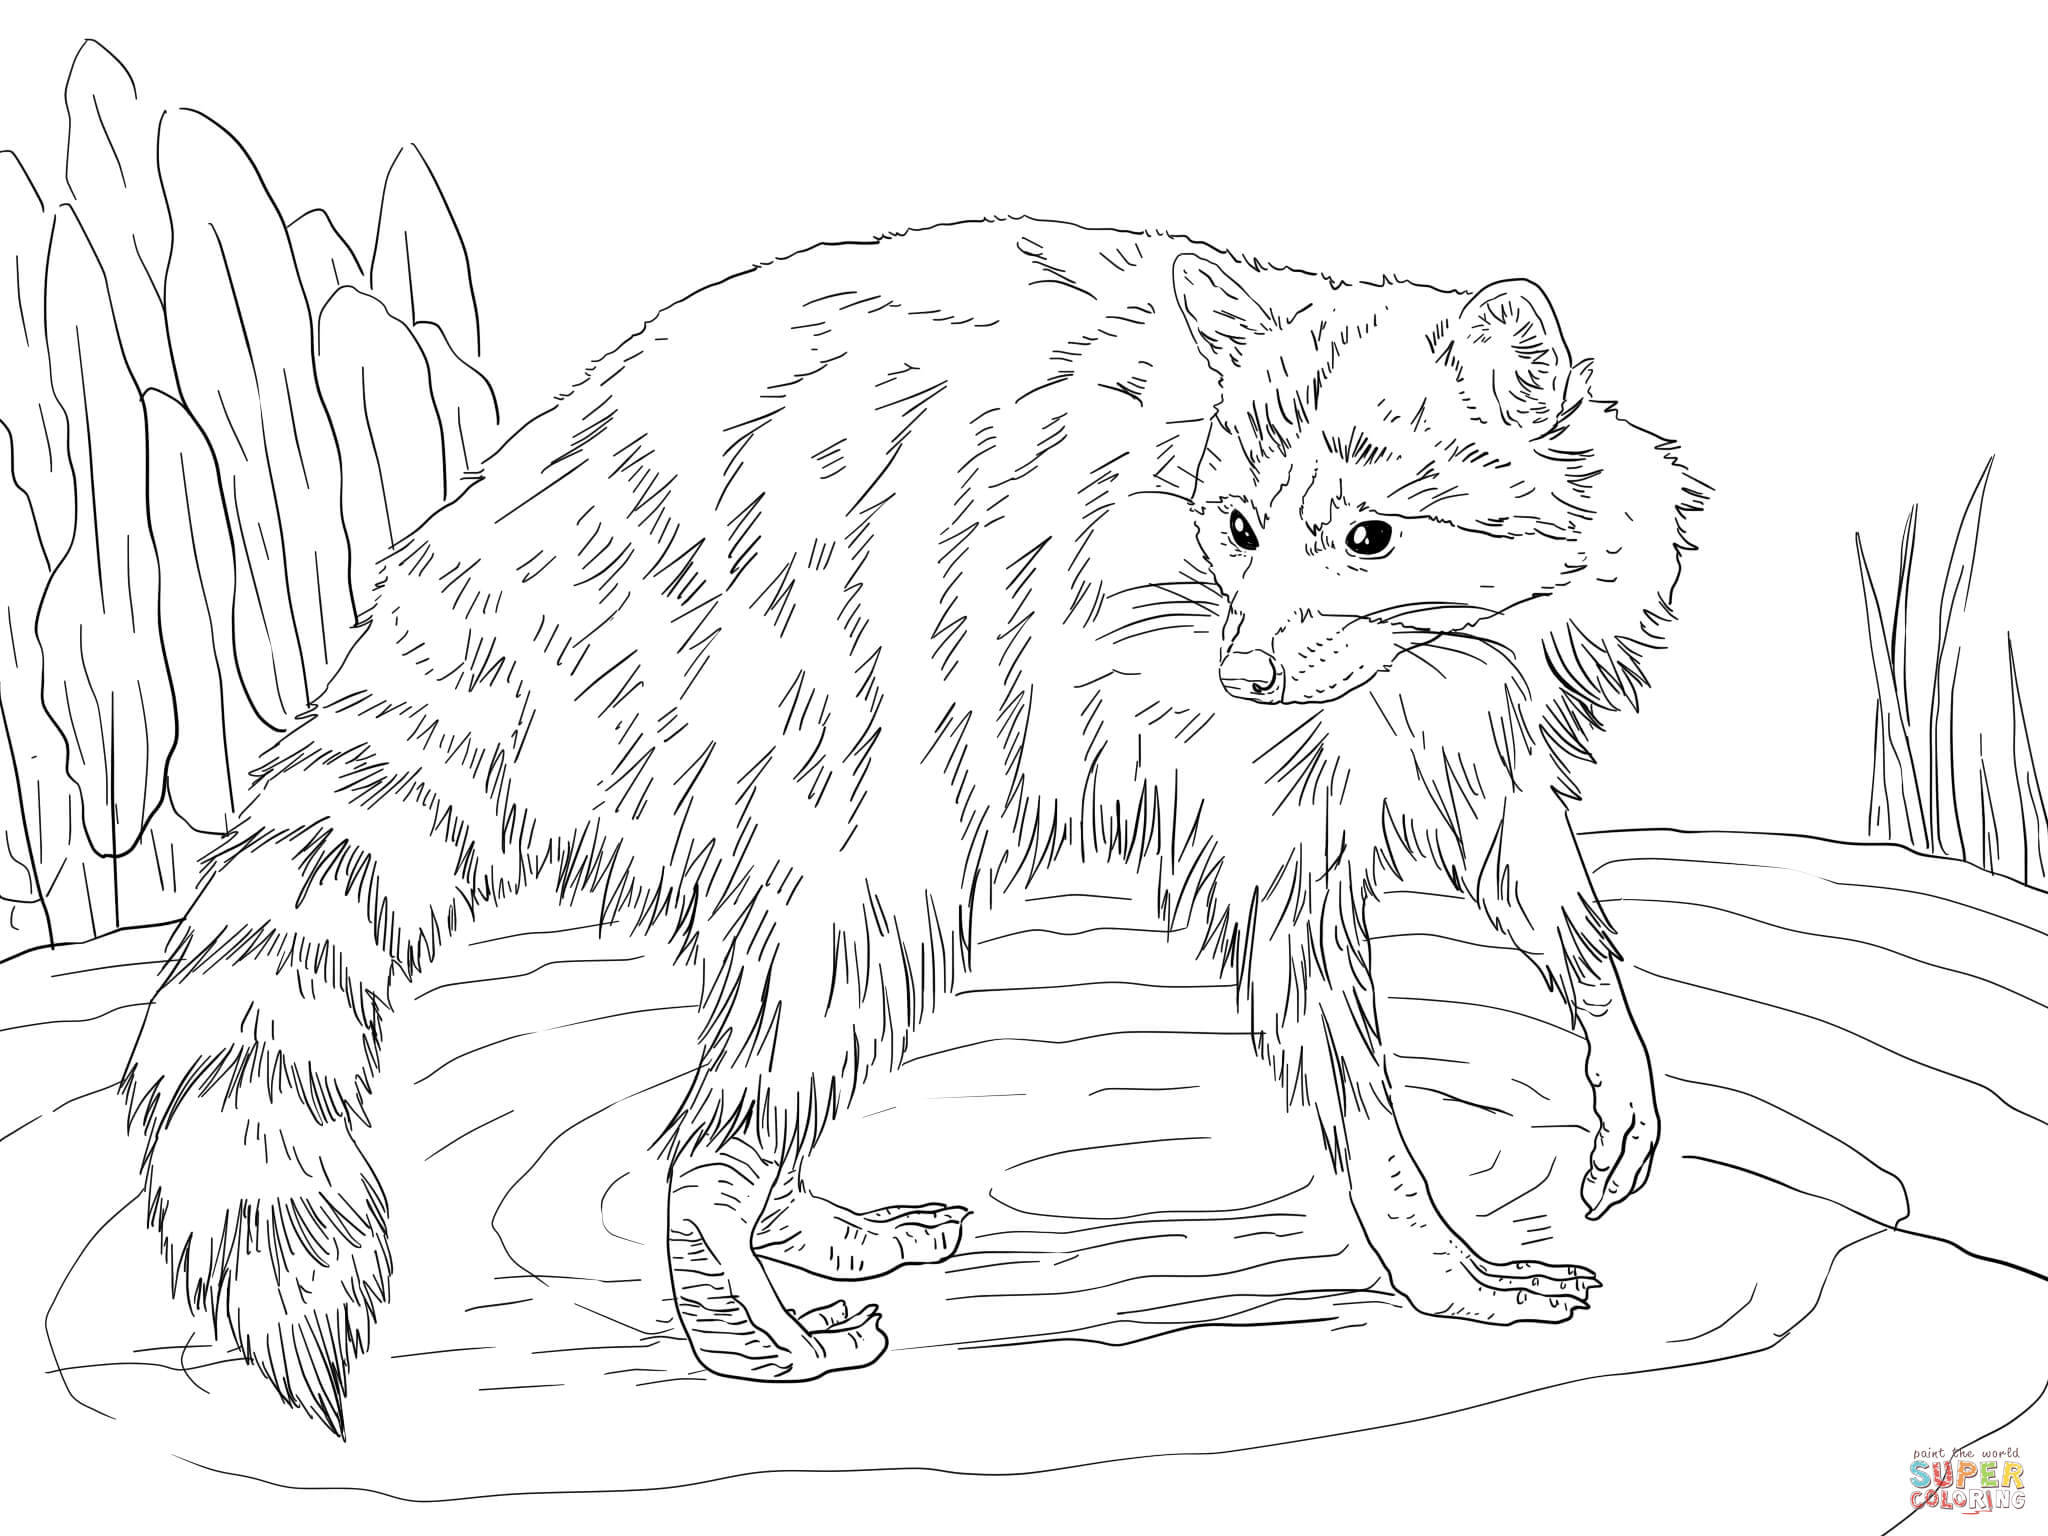 Free coloring pages raccoon - Raccoon Coloring Page Free Printable Coloring Pages